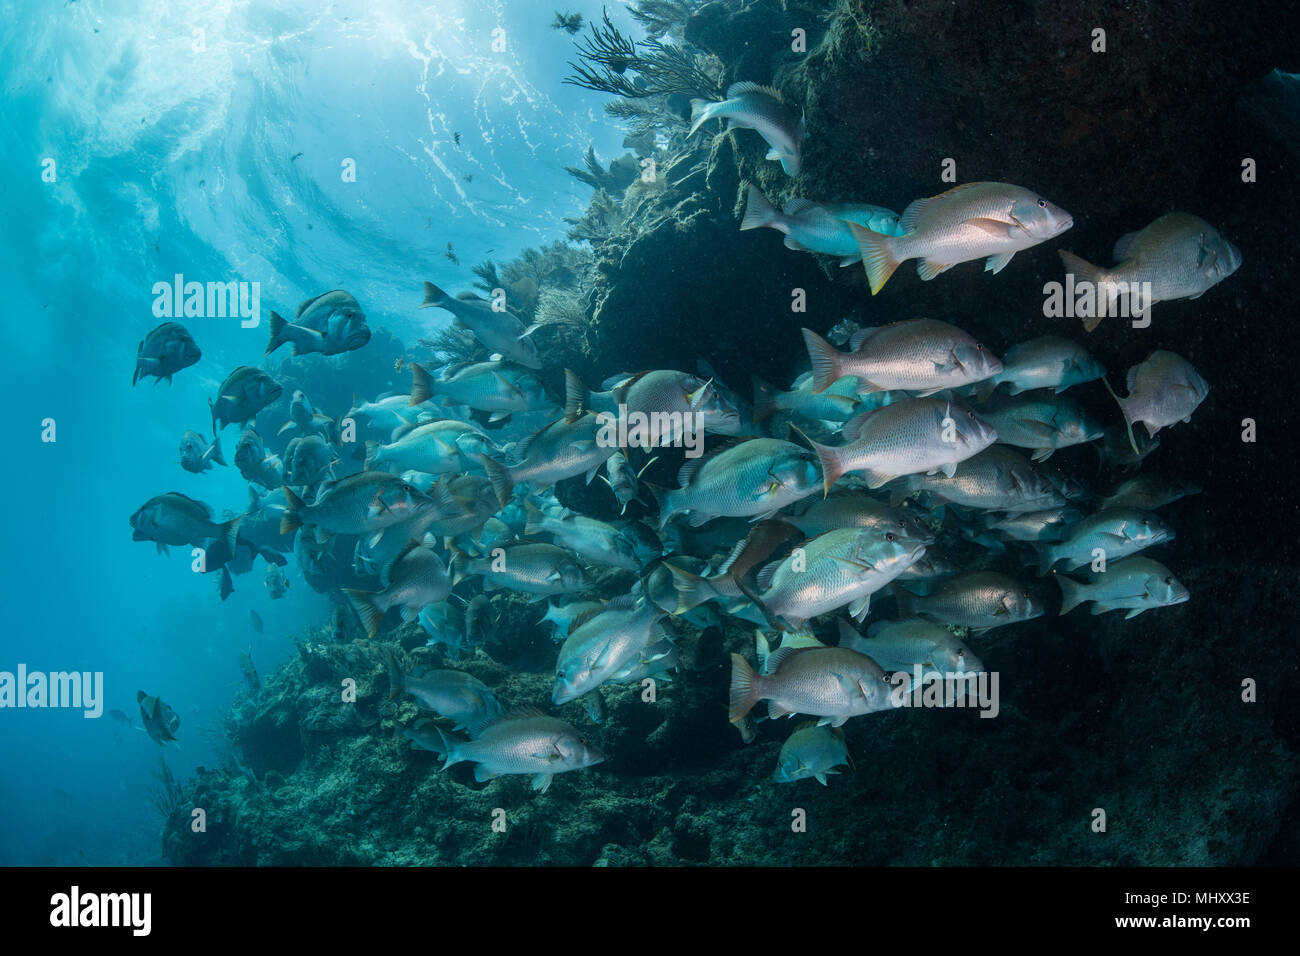 Underwater shot of red snapper shoal gathering to mate, Quintana Roo, Mexico - Stock Image